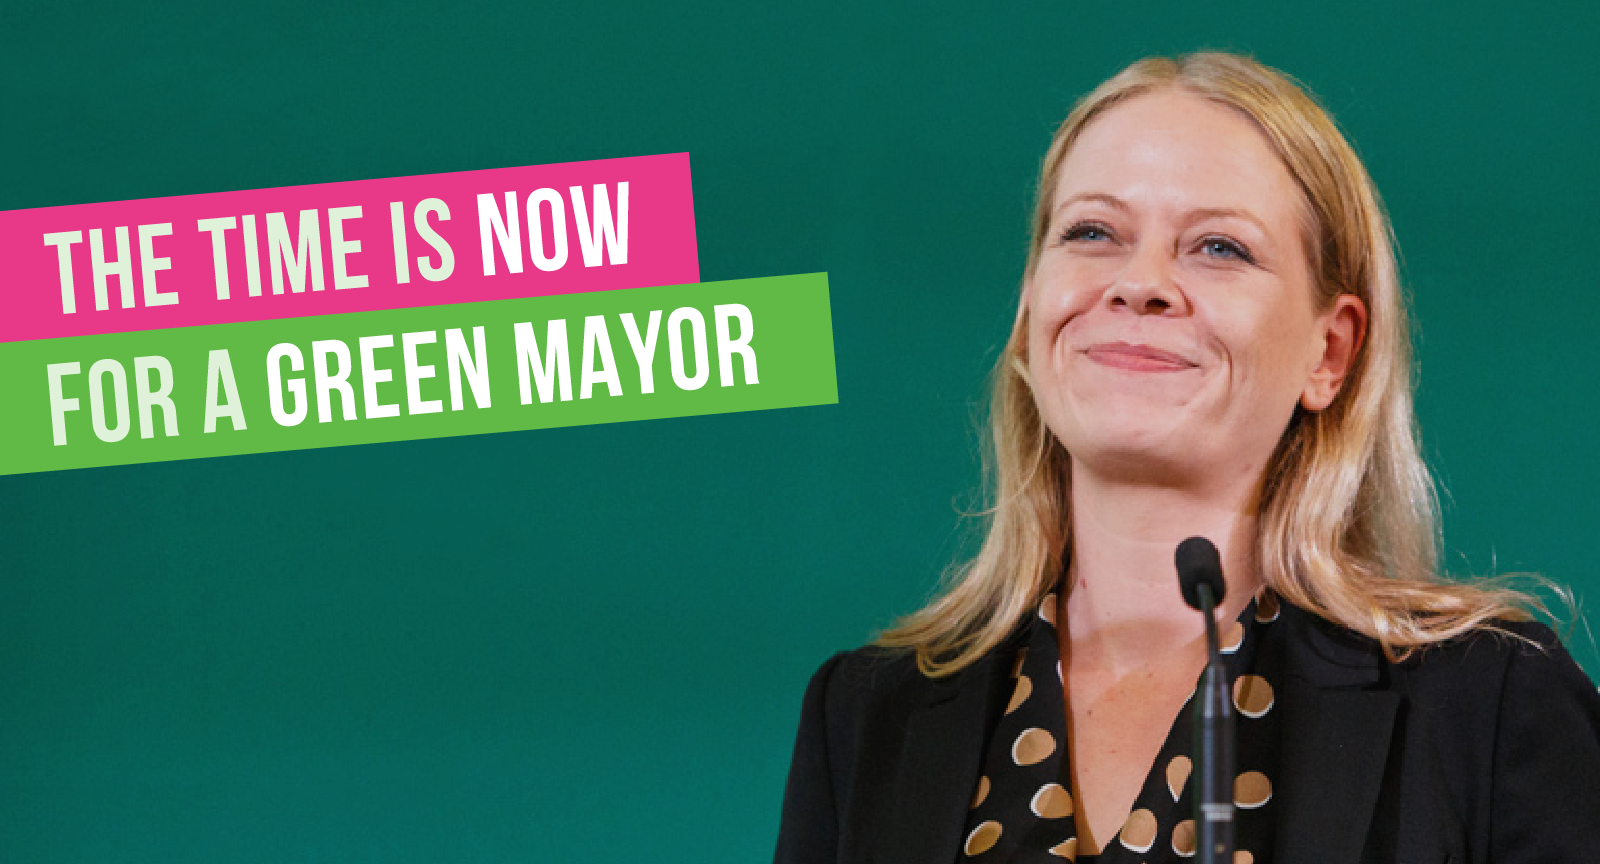 The Time is Now for a Green Mayor - speaking at Green conference